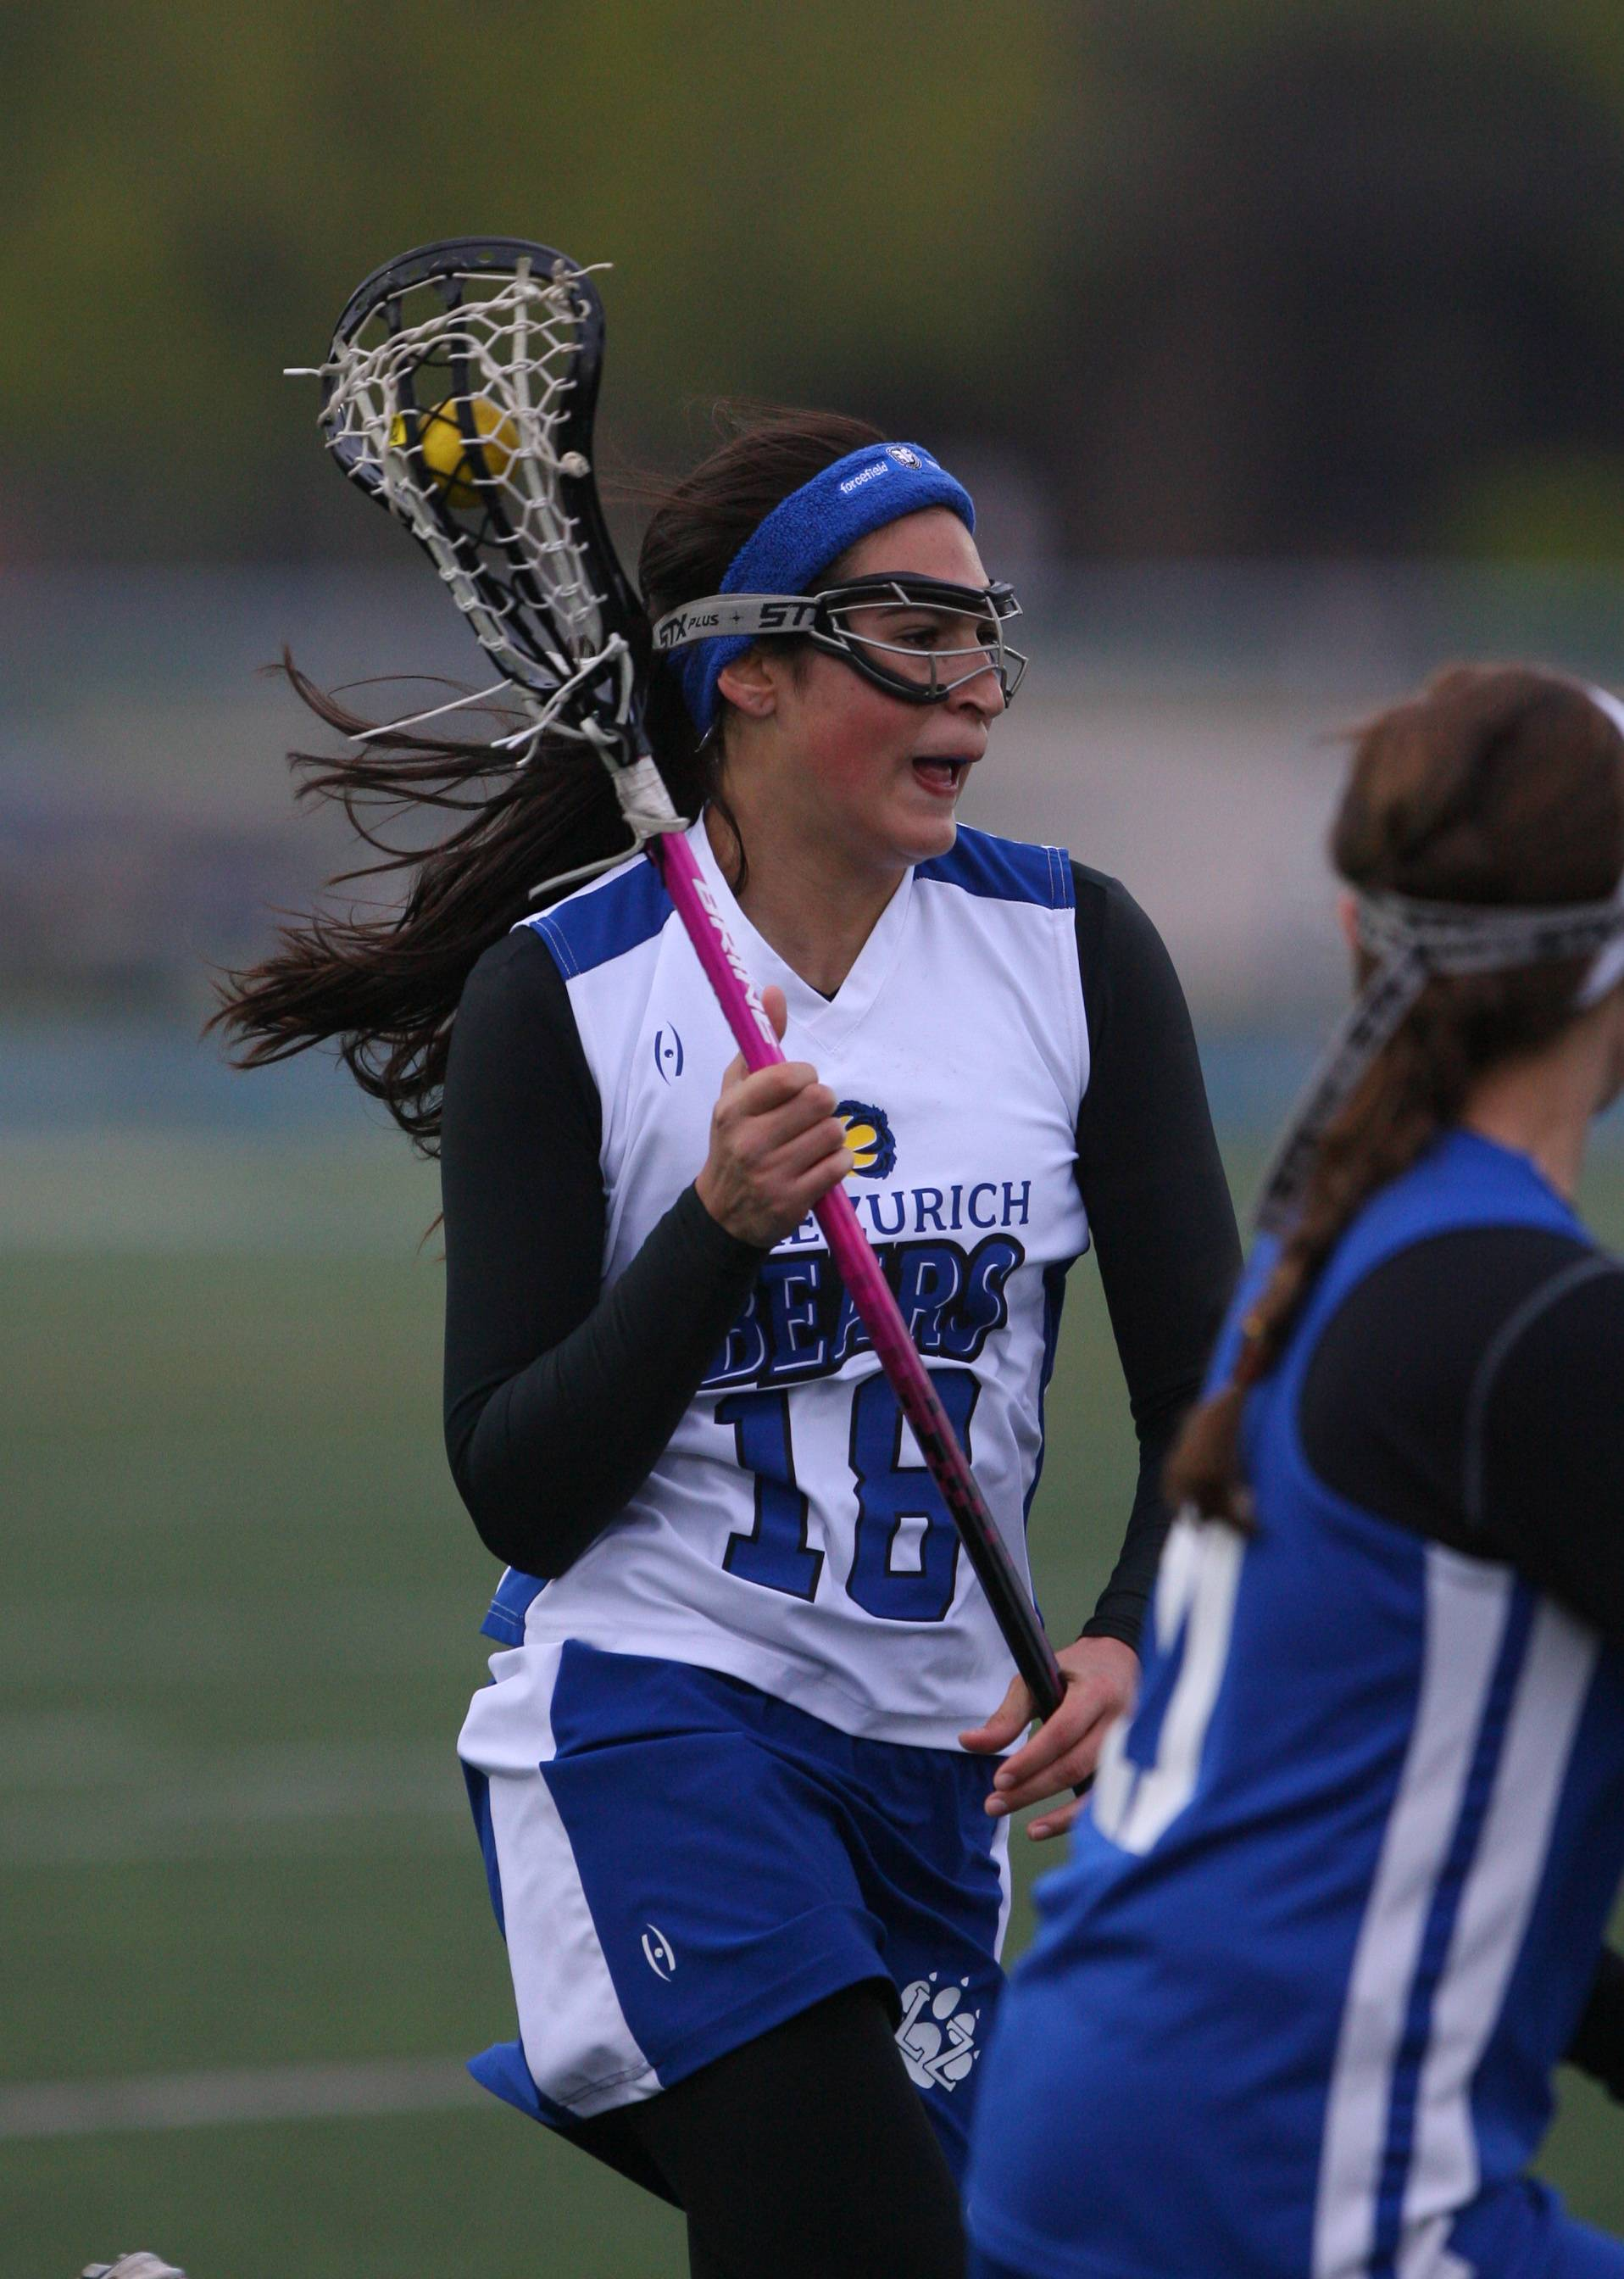 Lacrosse now a sports offering at Lake Zurich High